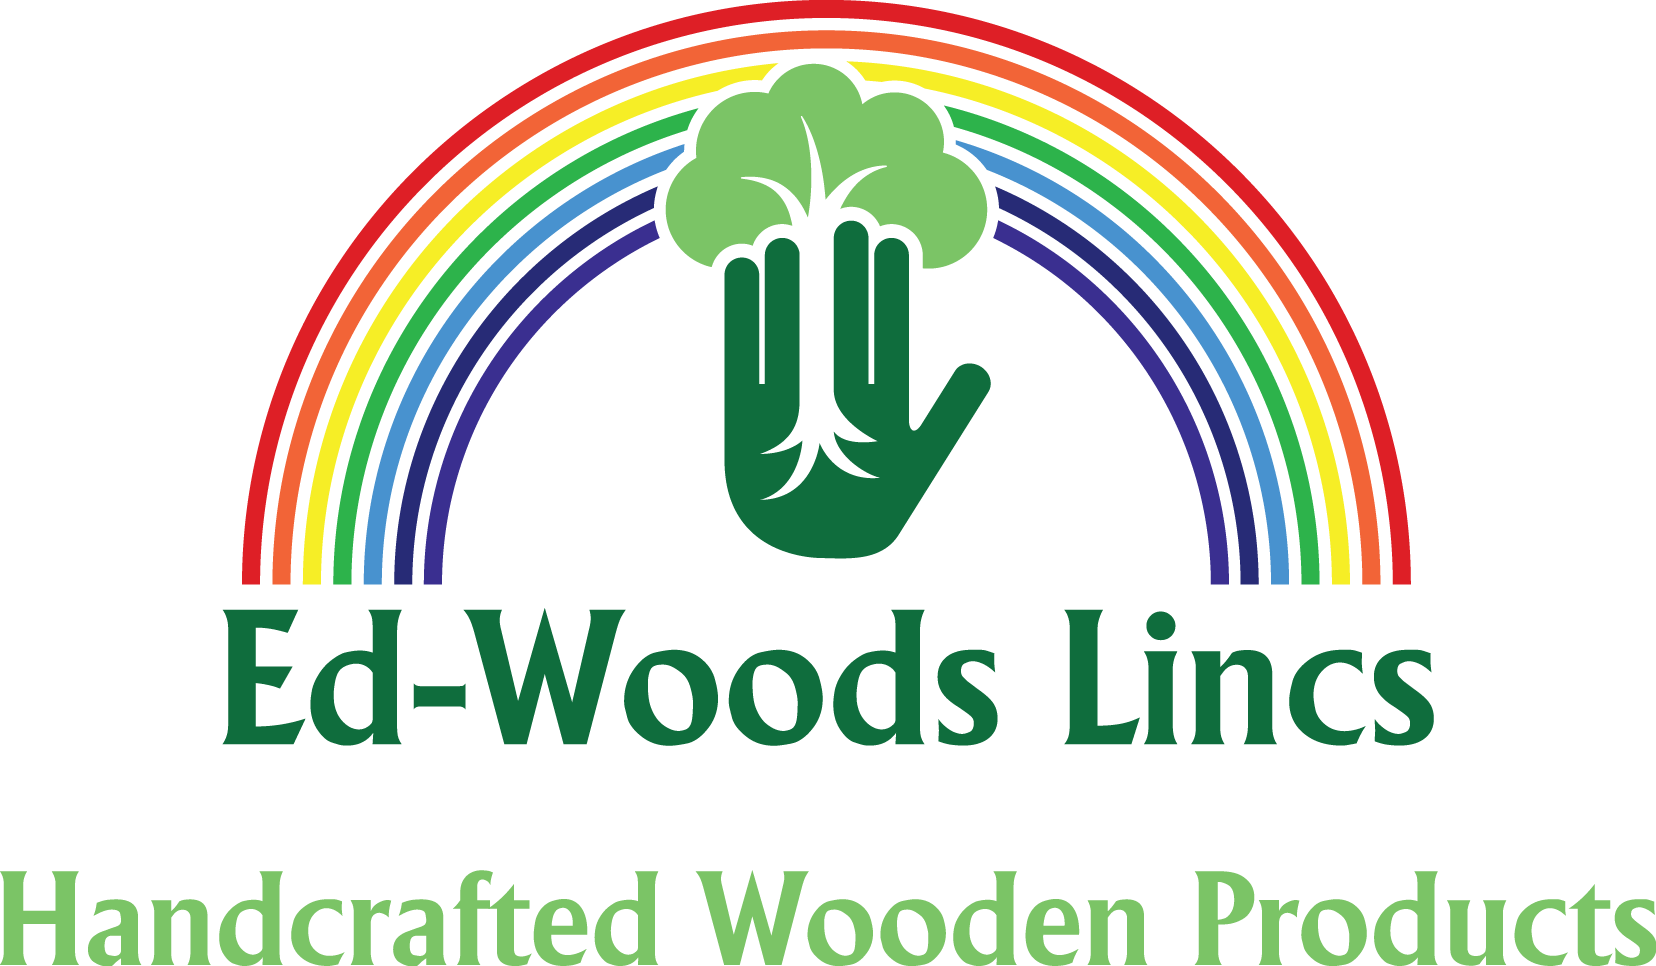 Ed-Woods Lincs , Handmade wooden items